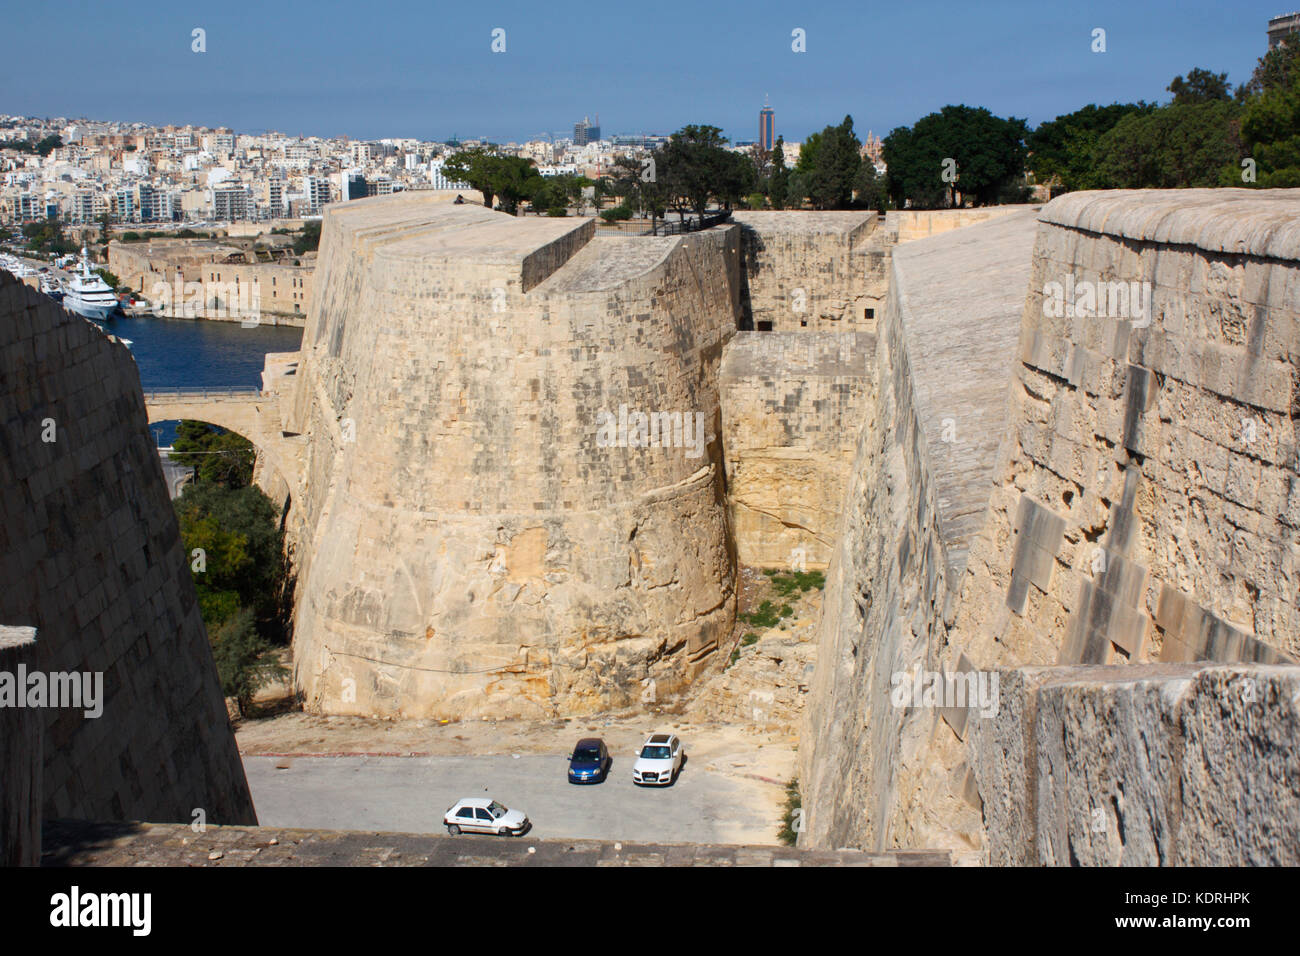 St Michael's Bastion, part of the landfront fortifications of Valletta, Malta, Europe, as seen from Hastings - Stock Image